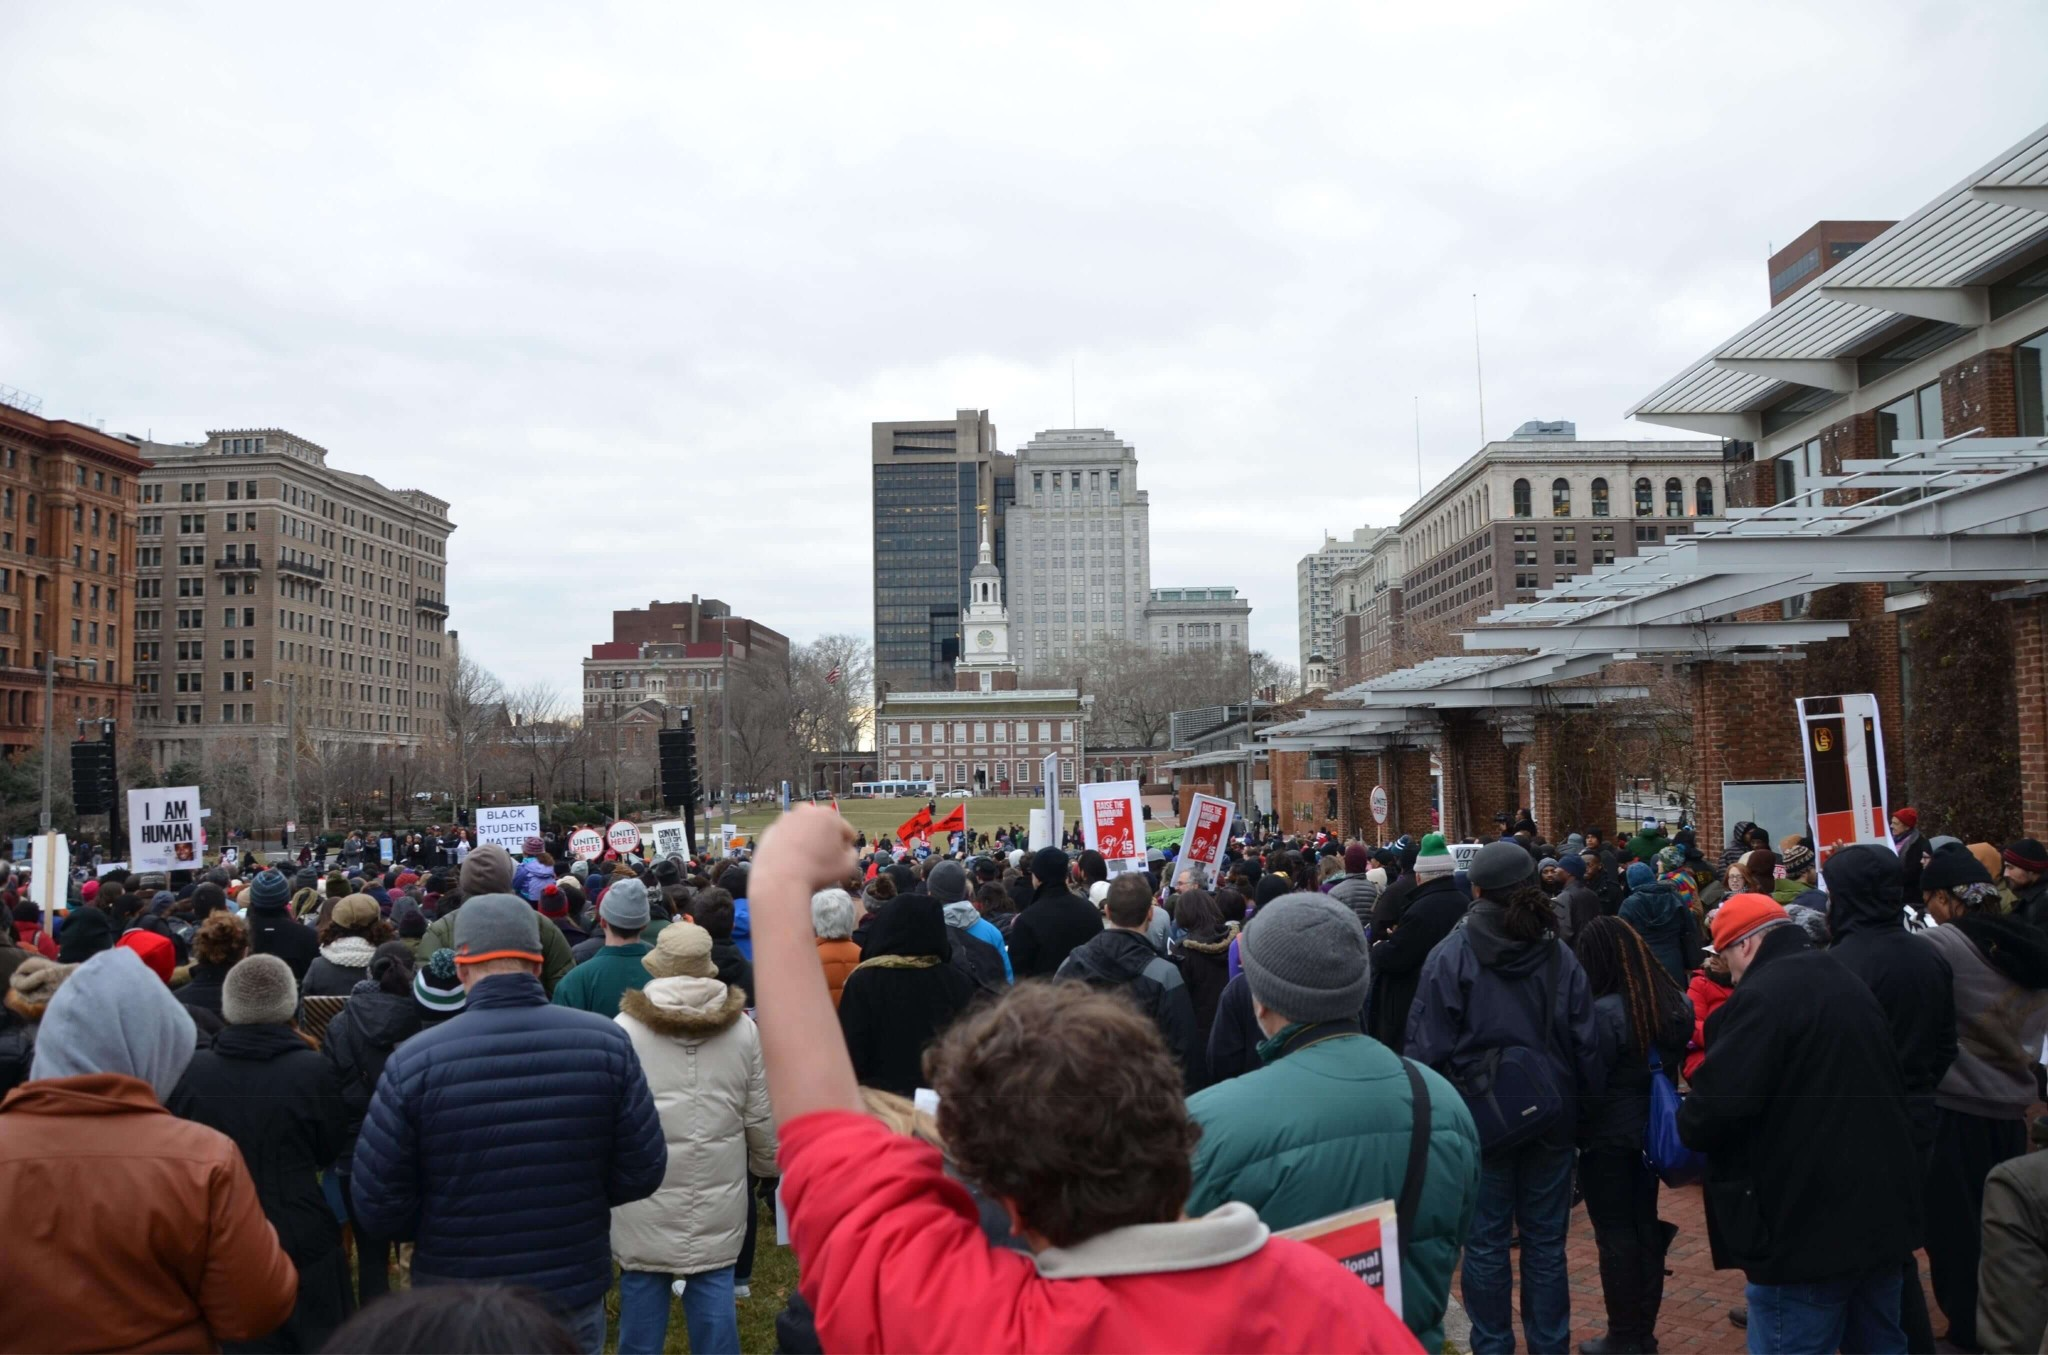 Helen MLK crowd at old liberty bell plaza